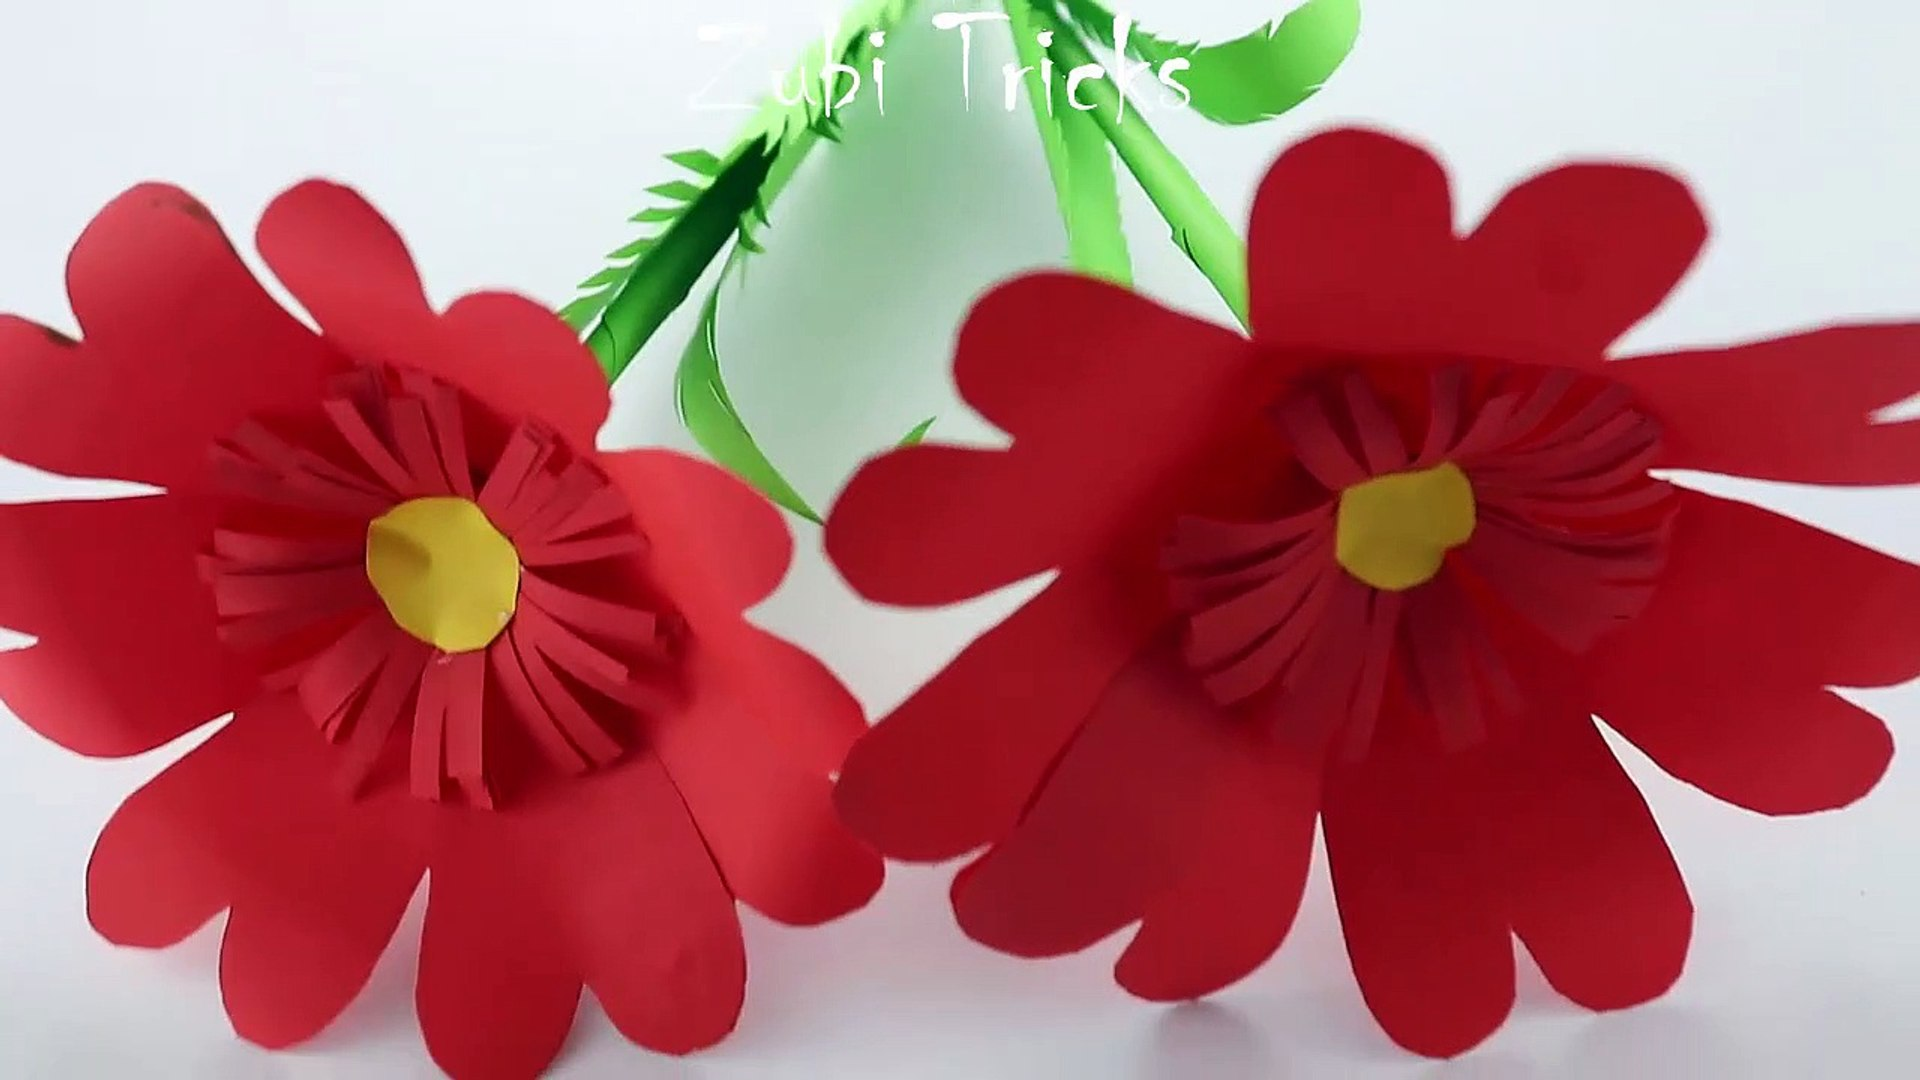 How to make 3d origami flower model1 - video dailymotion   1080x1920